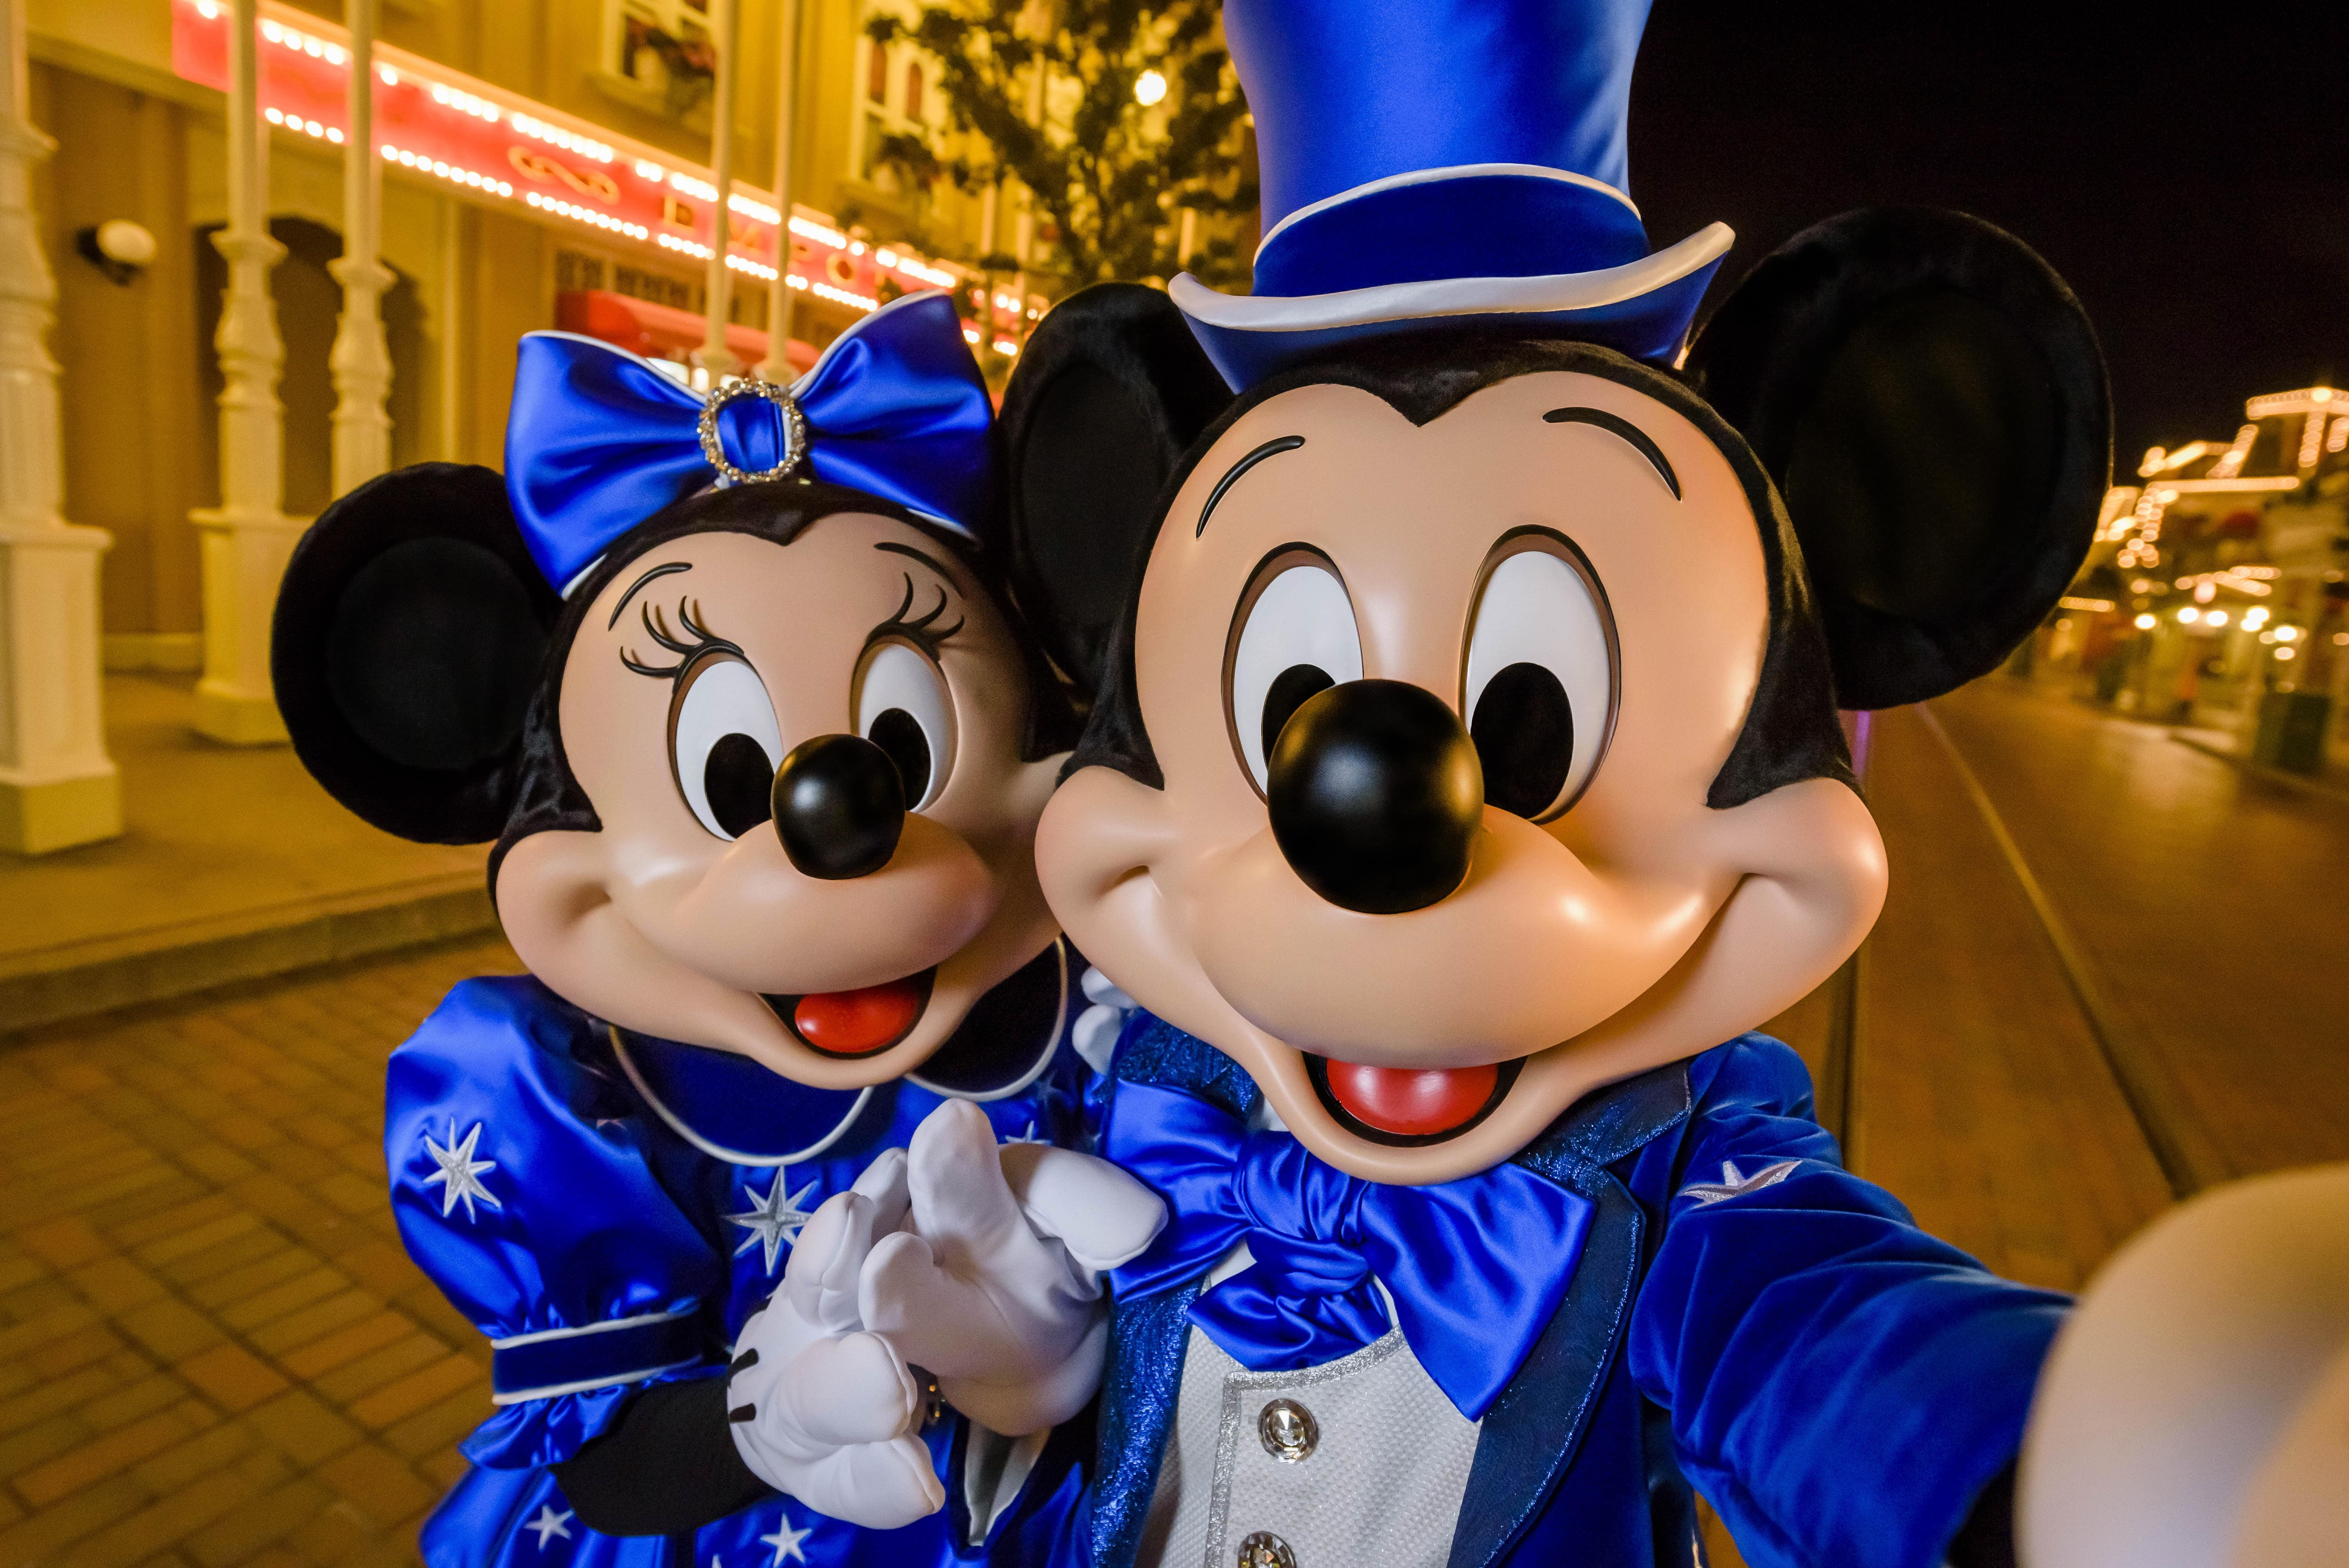 Mickey and Minnie appear in their 25th anniversary outfit